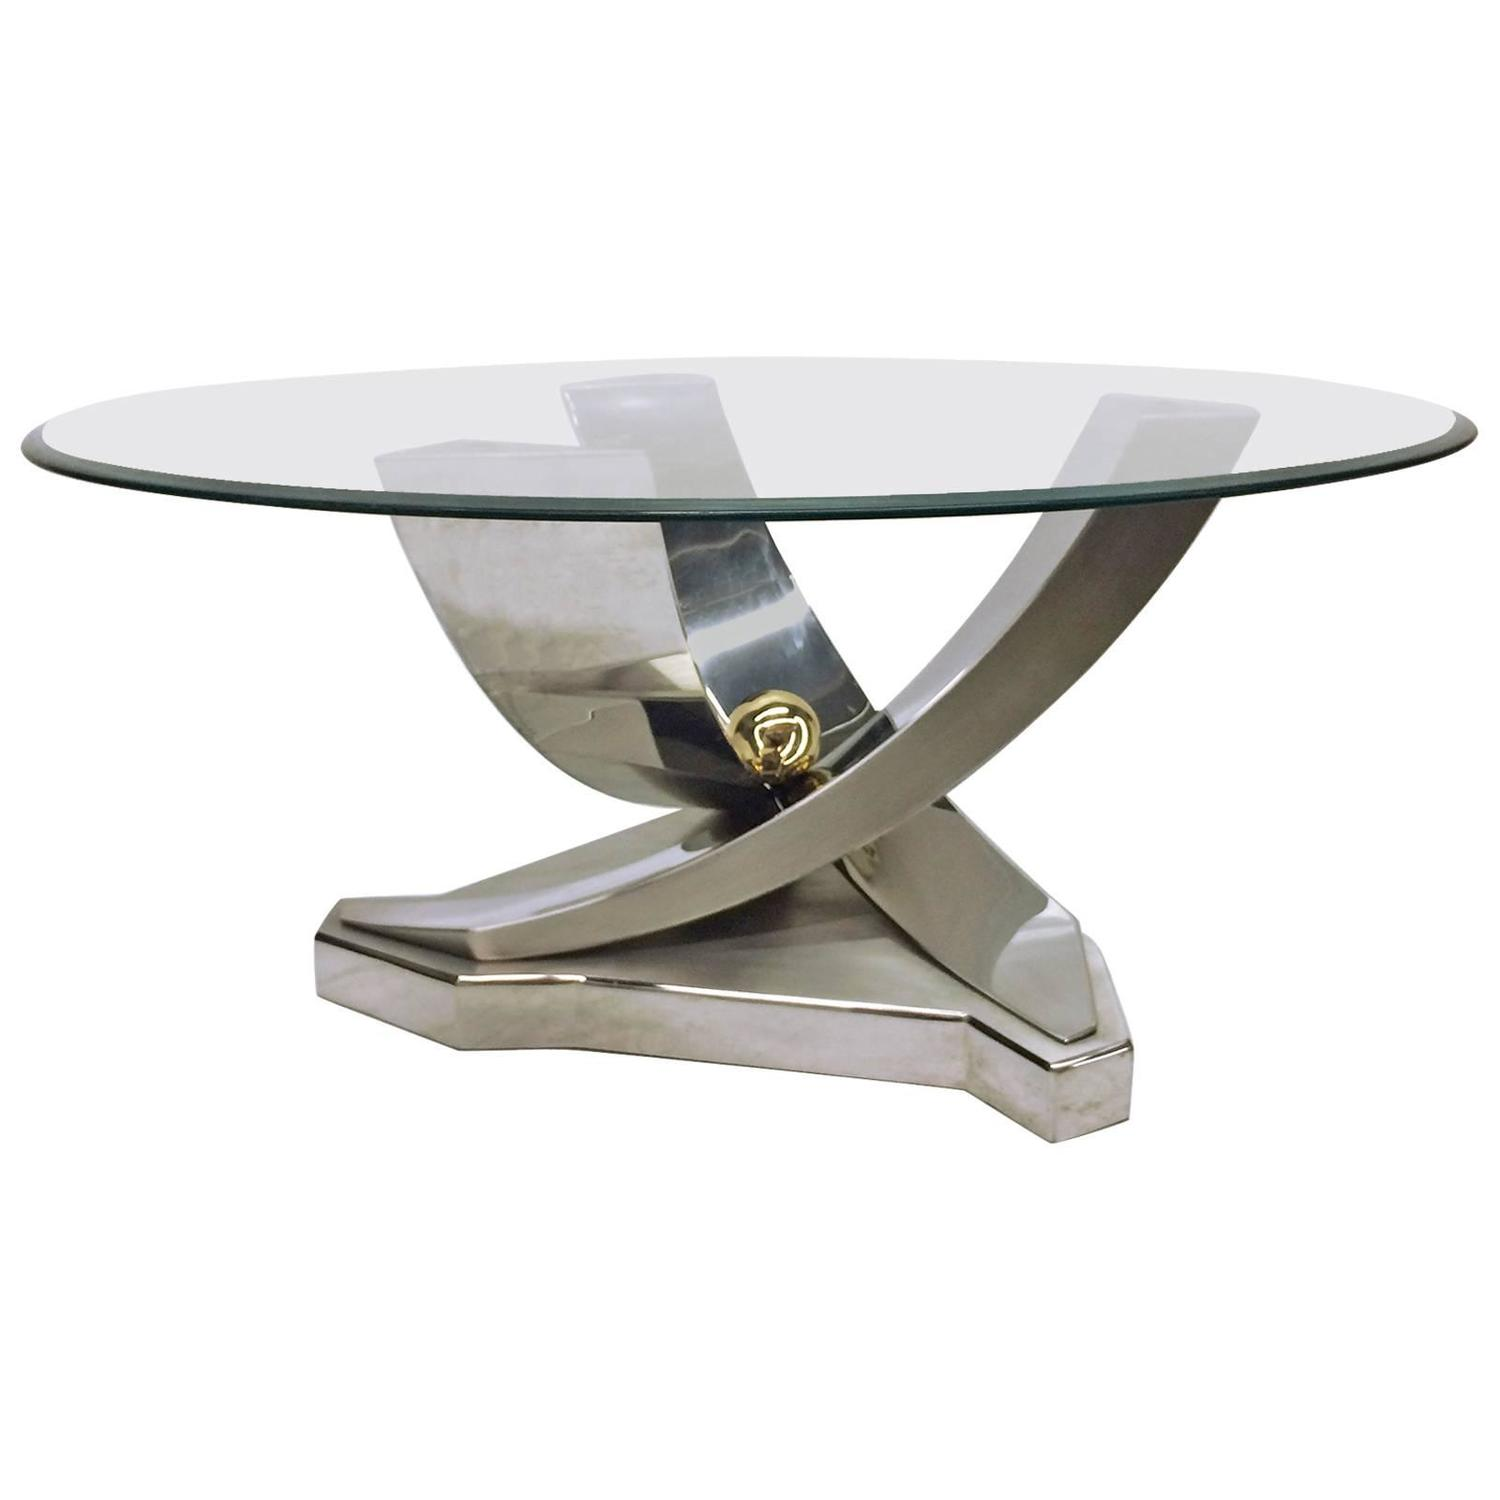 Mix Of Polished Chrome Brass And Brushed Stainless Steel Coffee Table For Sale At 1stdibs